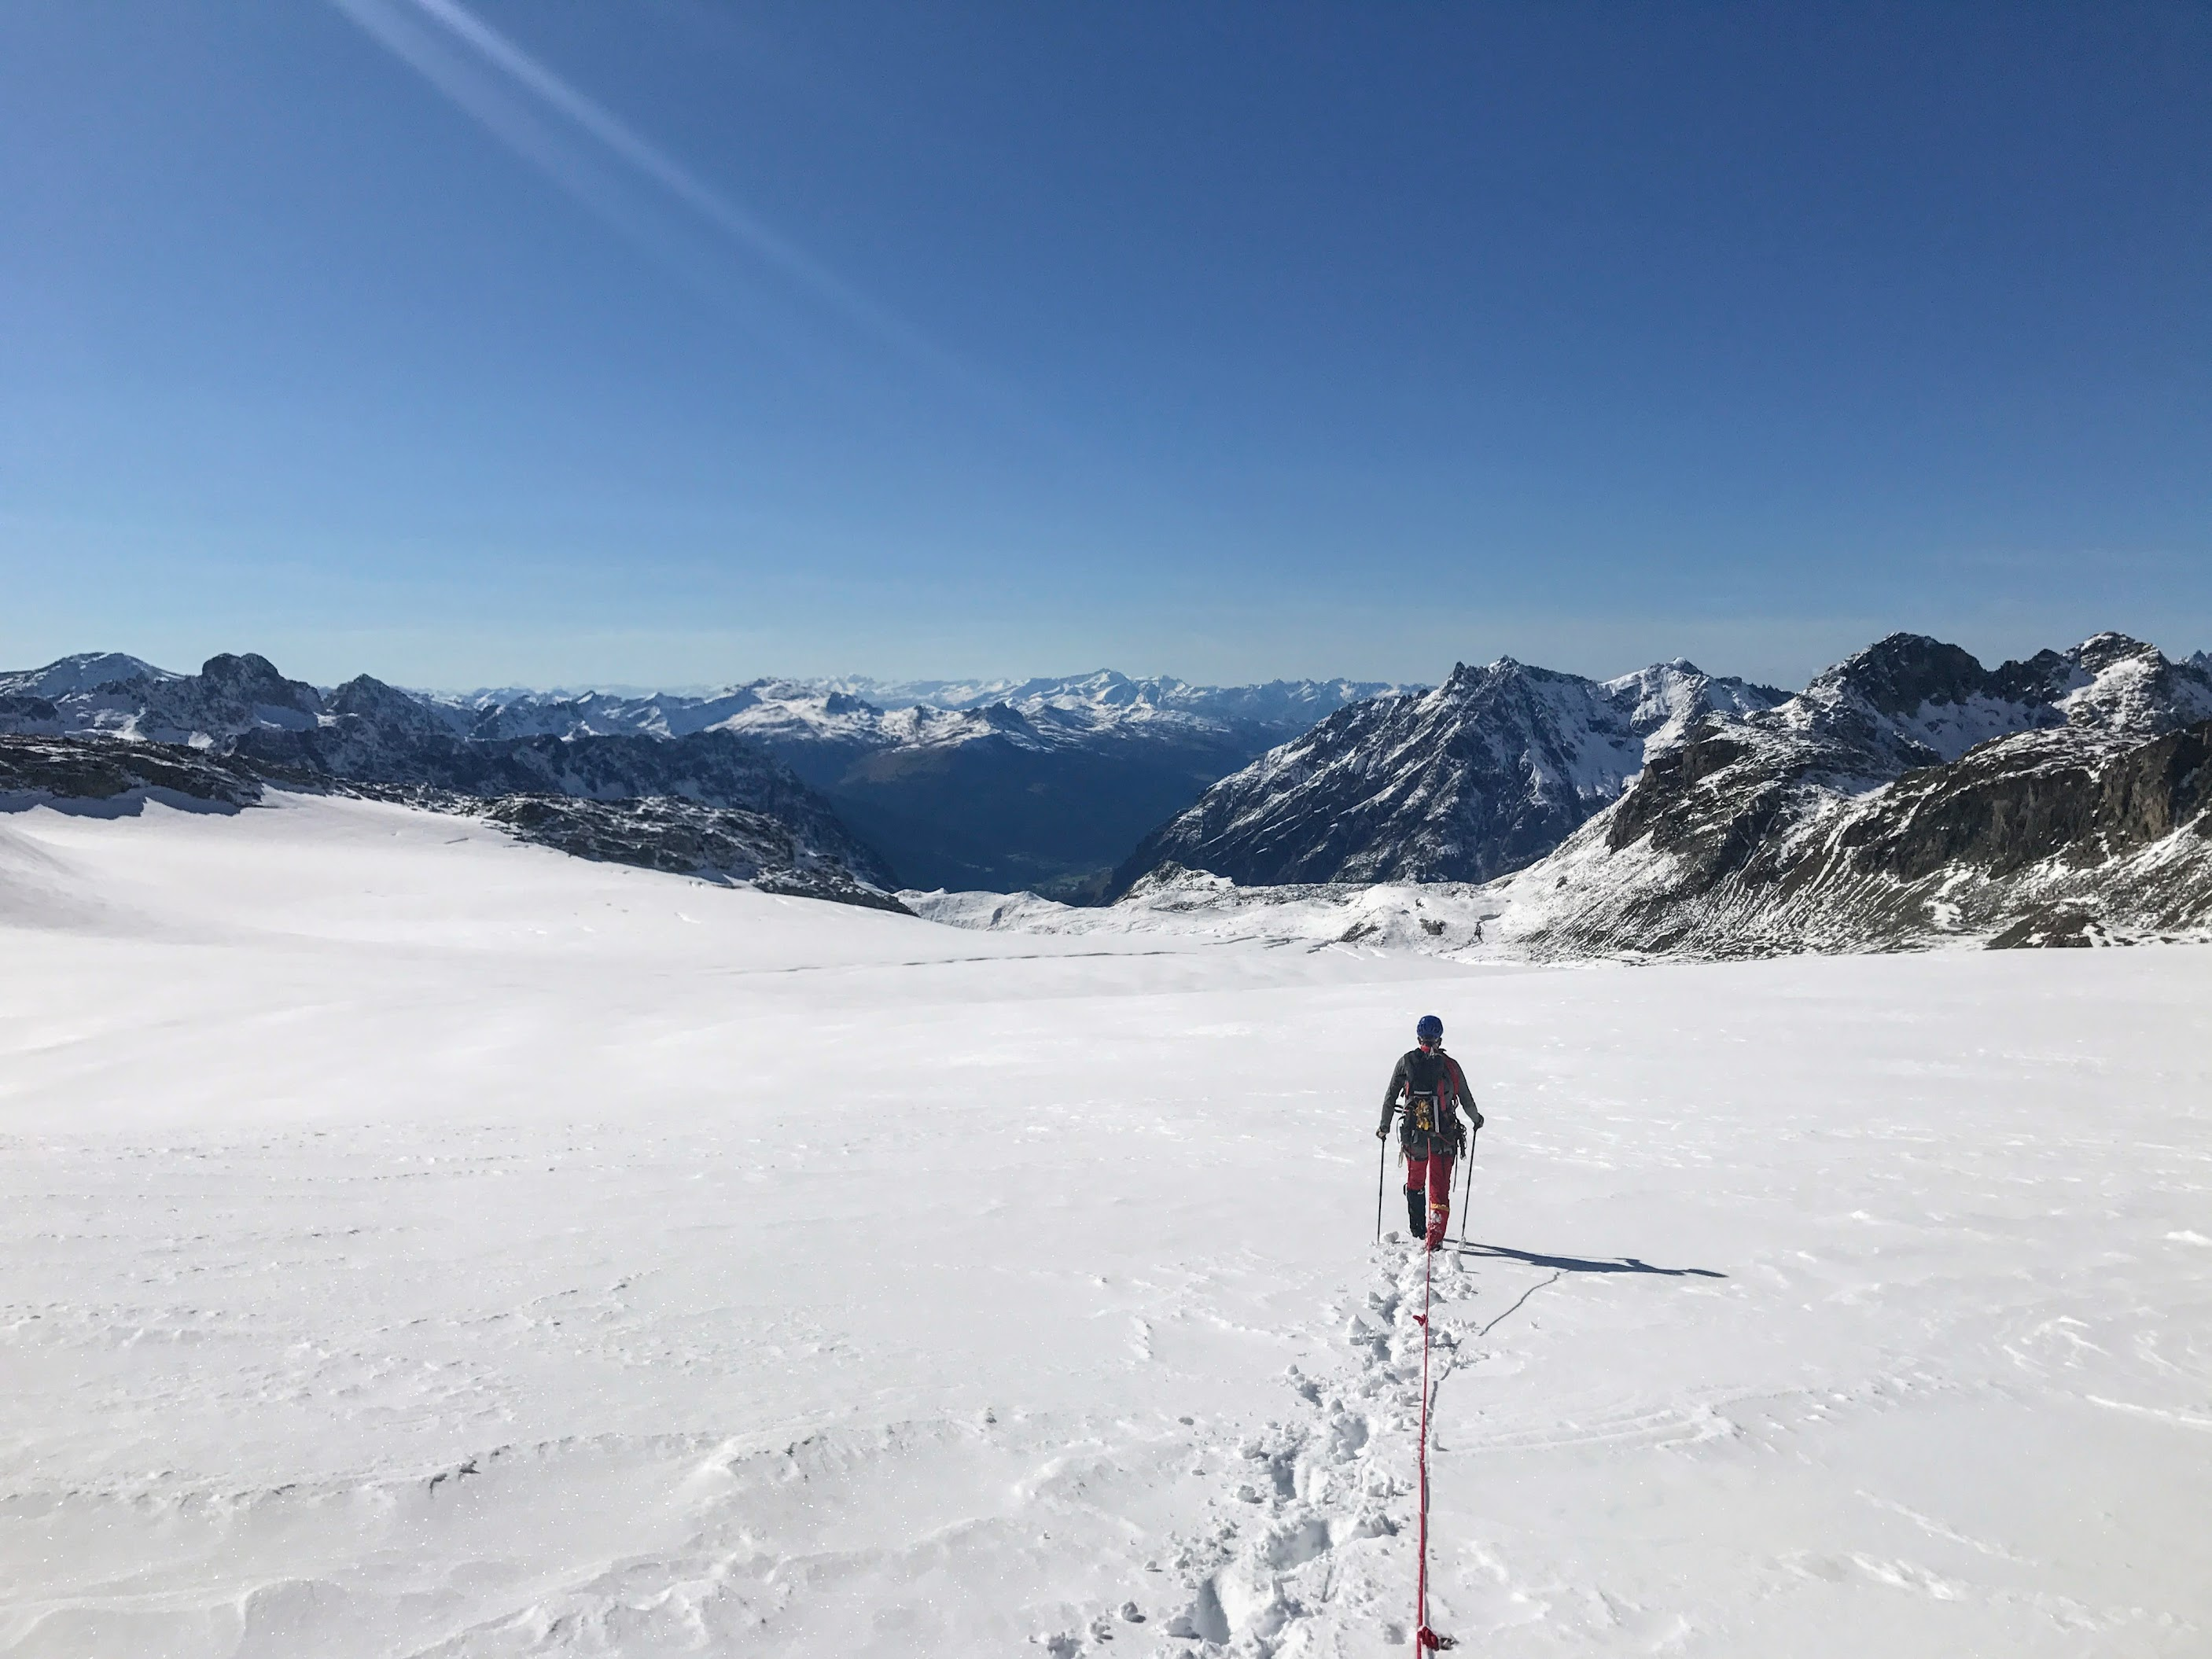 Siemen breaking trail on the Silvretta glacier